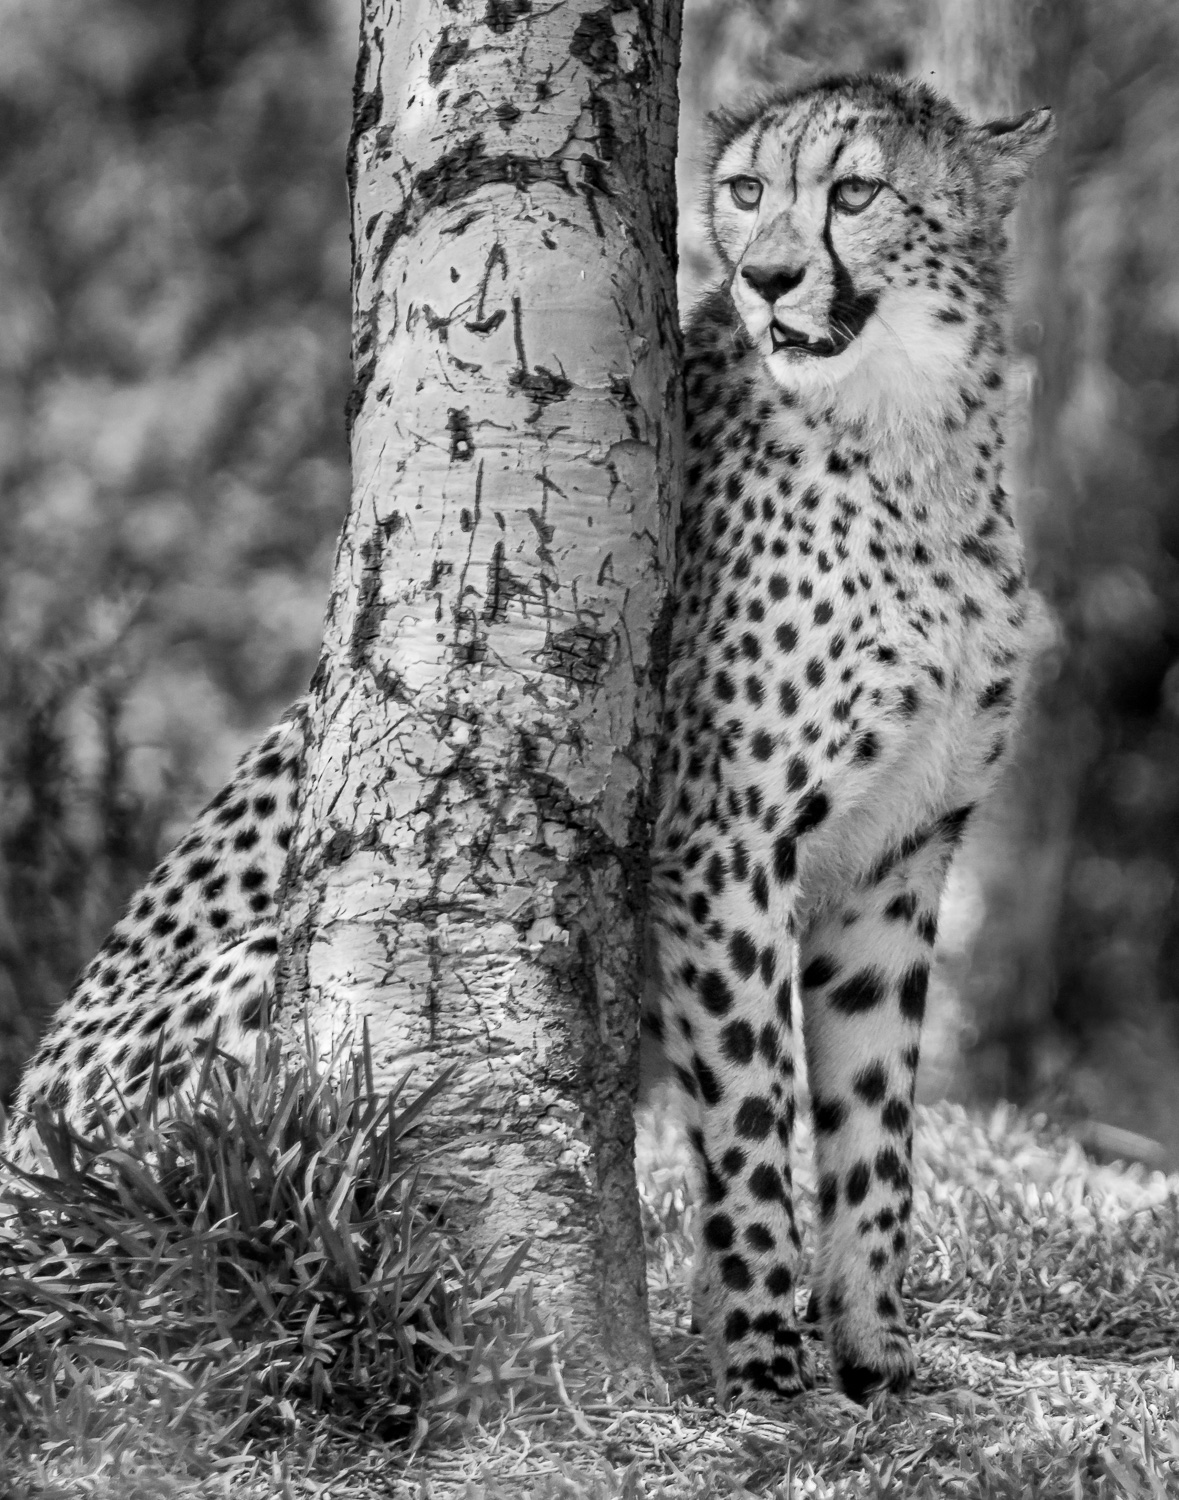 Image: Monochrome can give a classy look and in the case of this cheetah, emphasize his spotted camo...